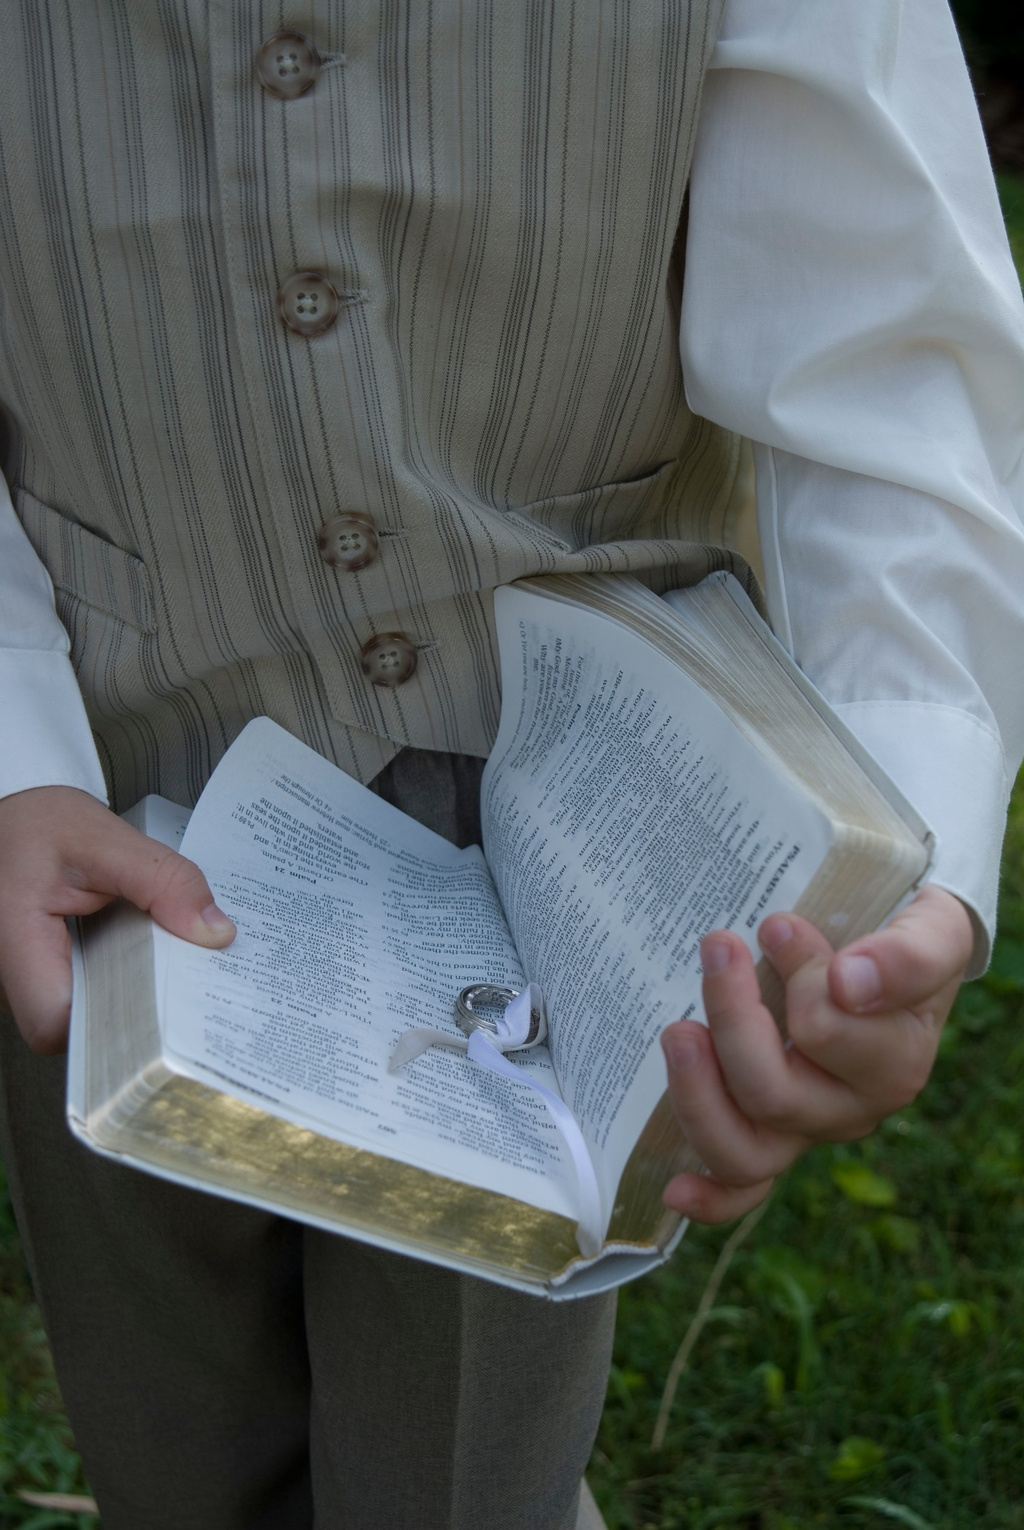 The ring bearer carries the wedding bands inside a family bible.